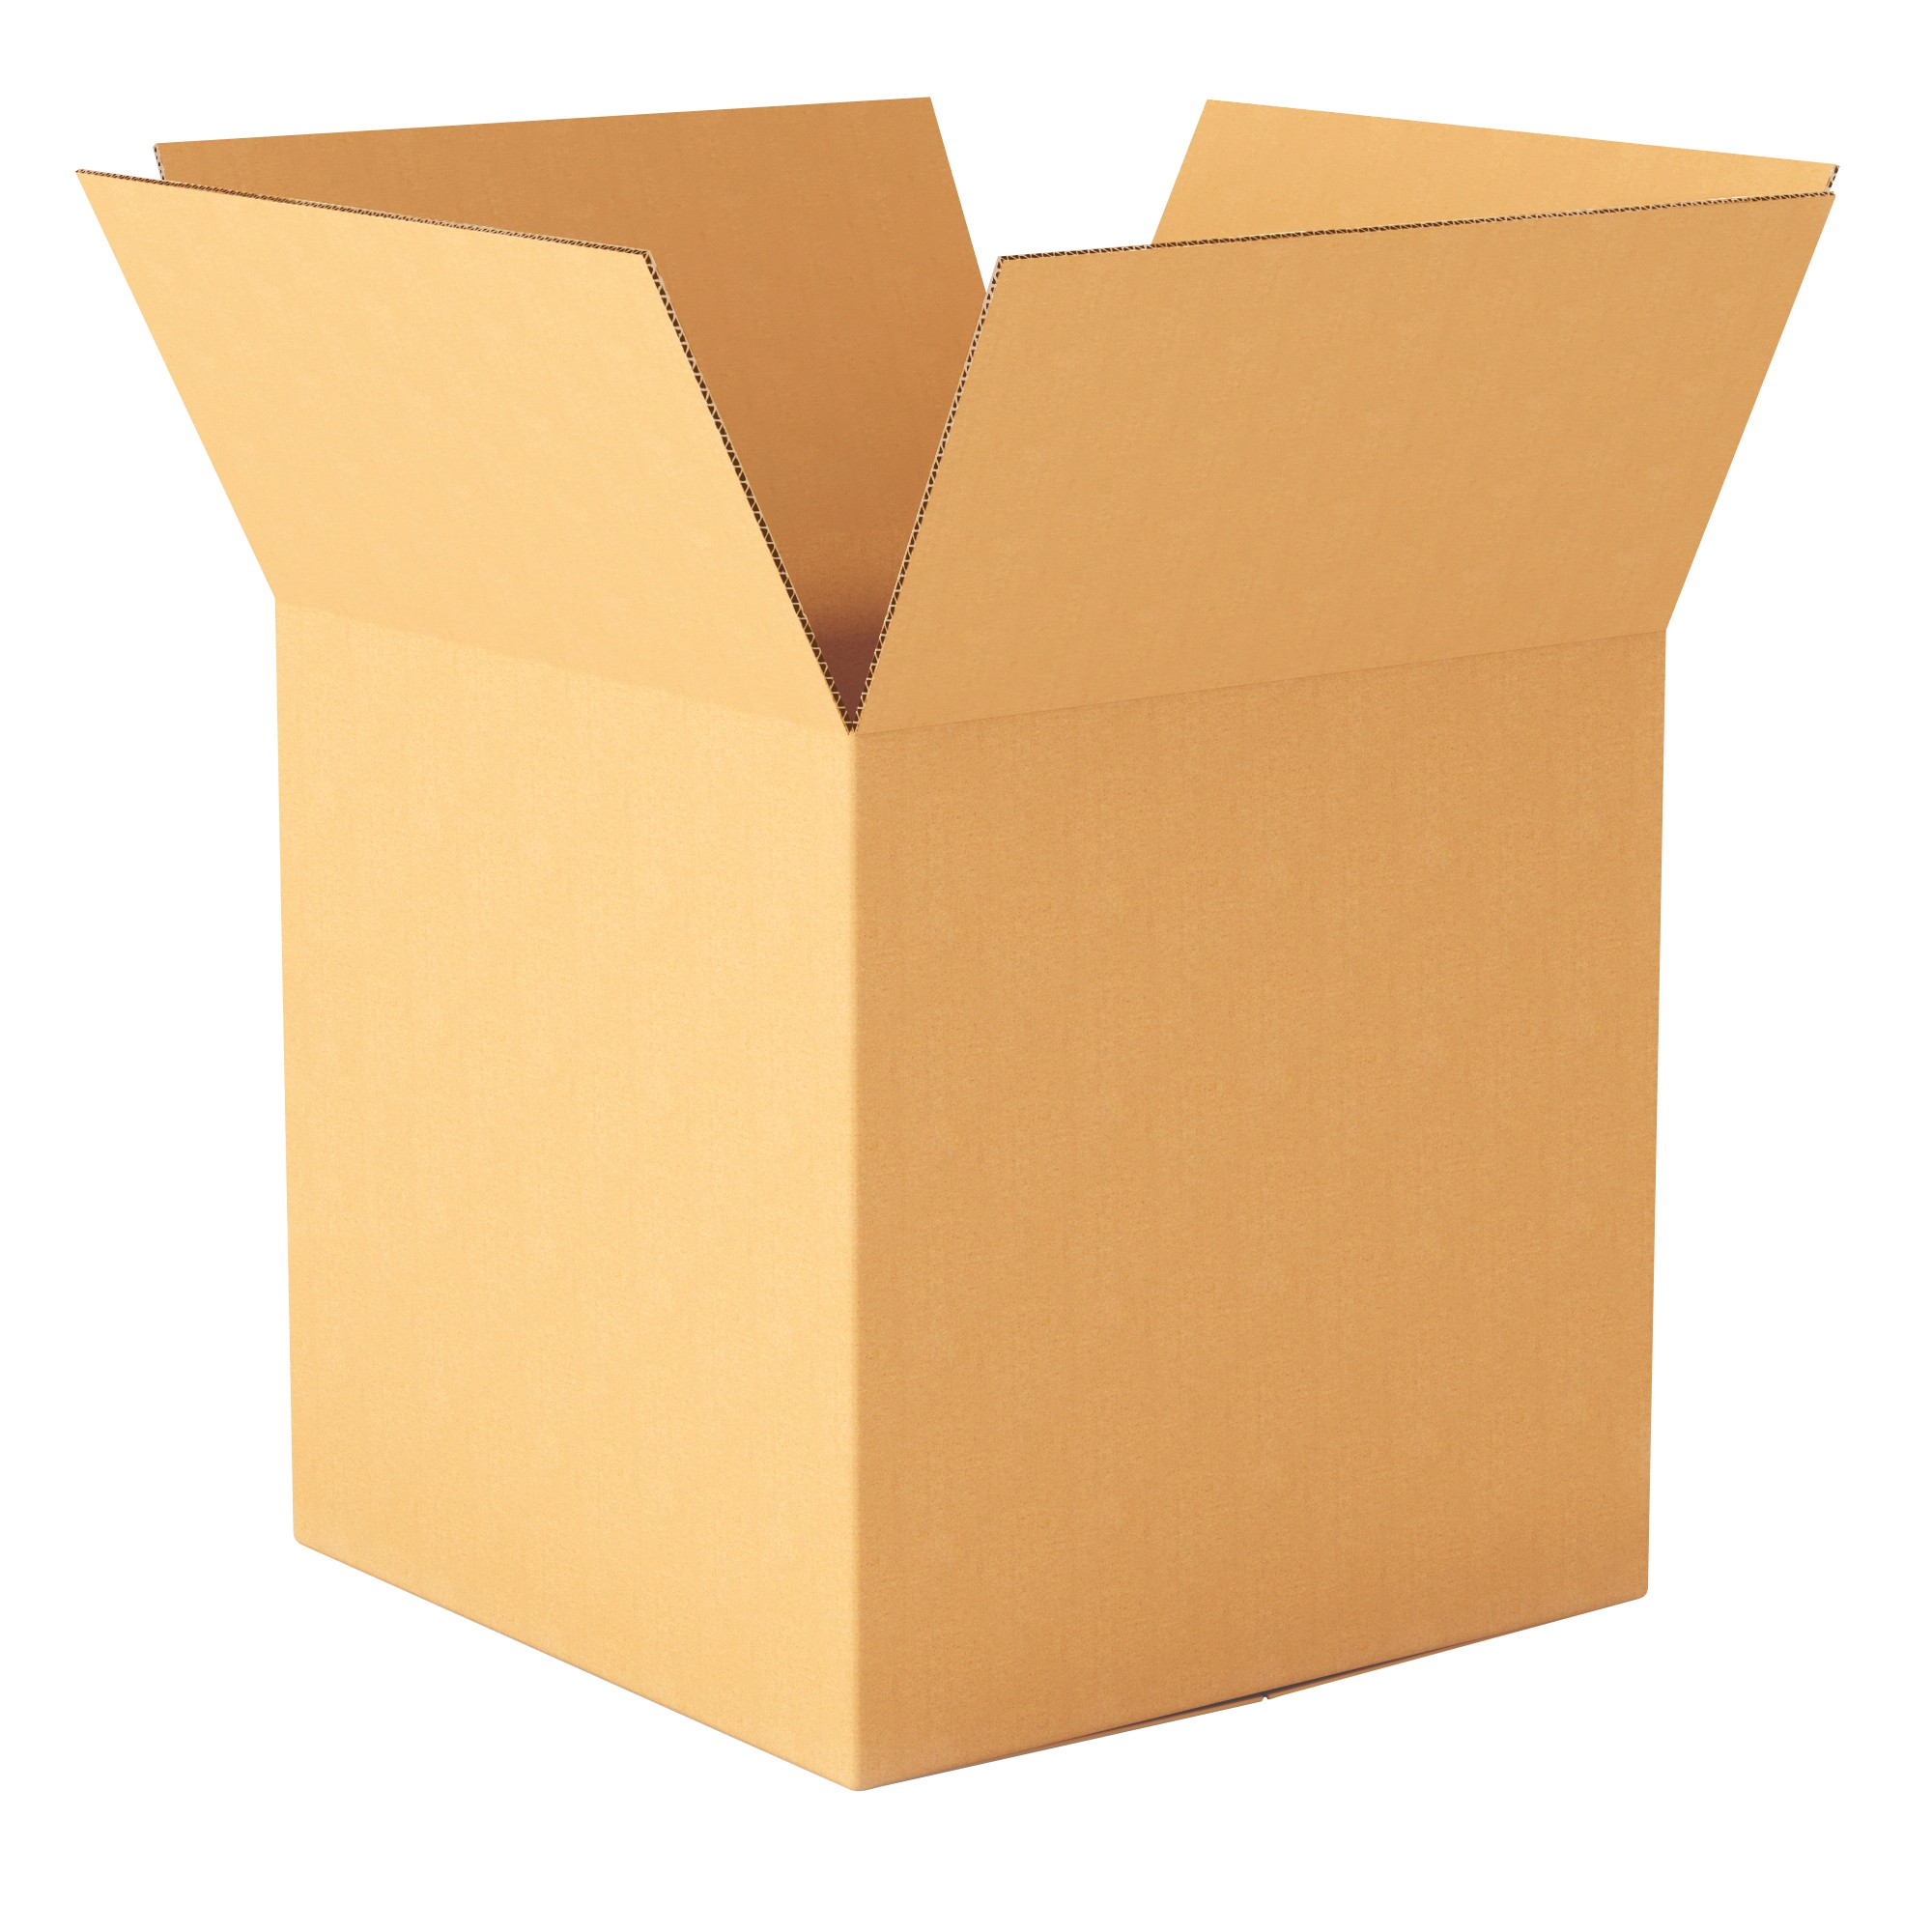 TOTALPACK® Ultra-Strong Single-Wall, Cardboard Corrugated